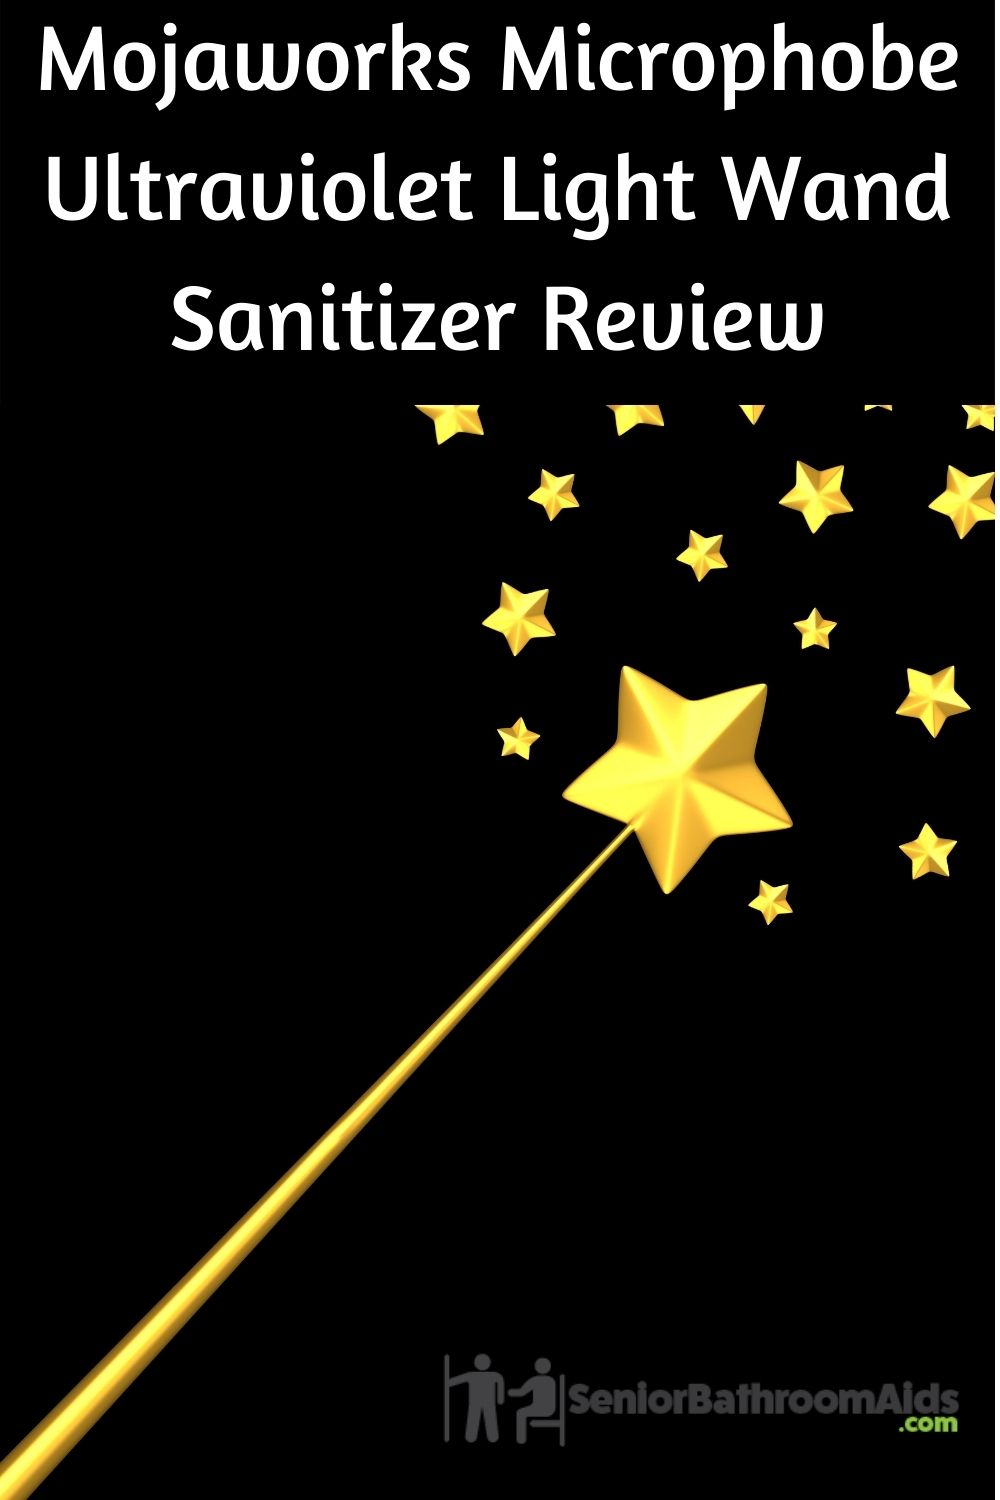 Mojaworks Microphobe Ultraviolet Light Wand Sanitizer Review